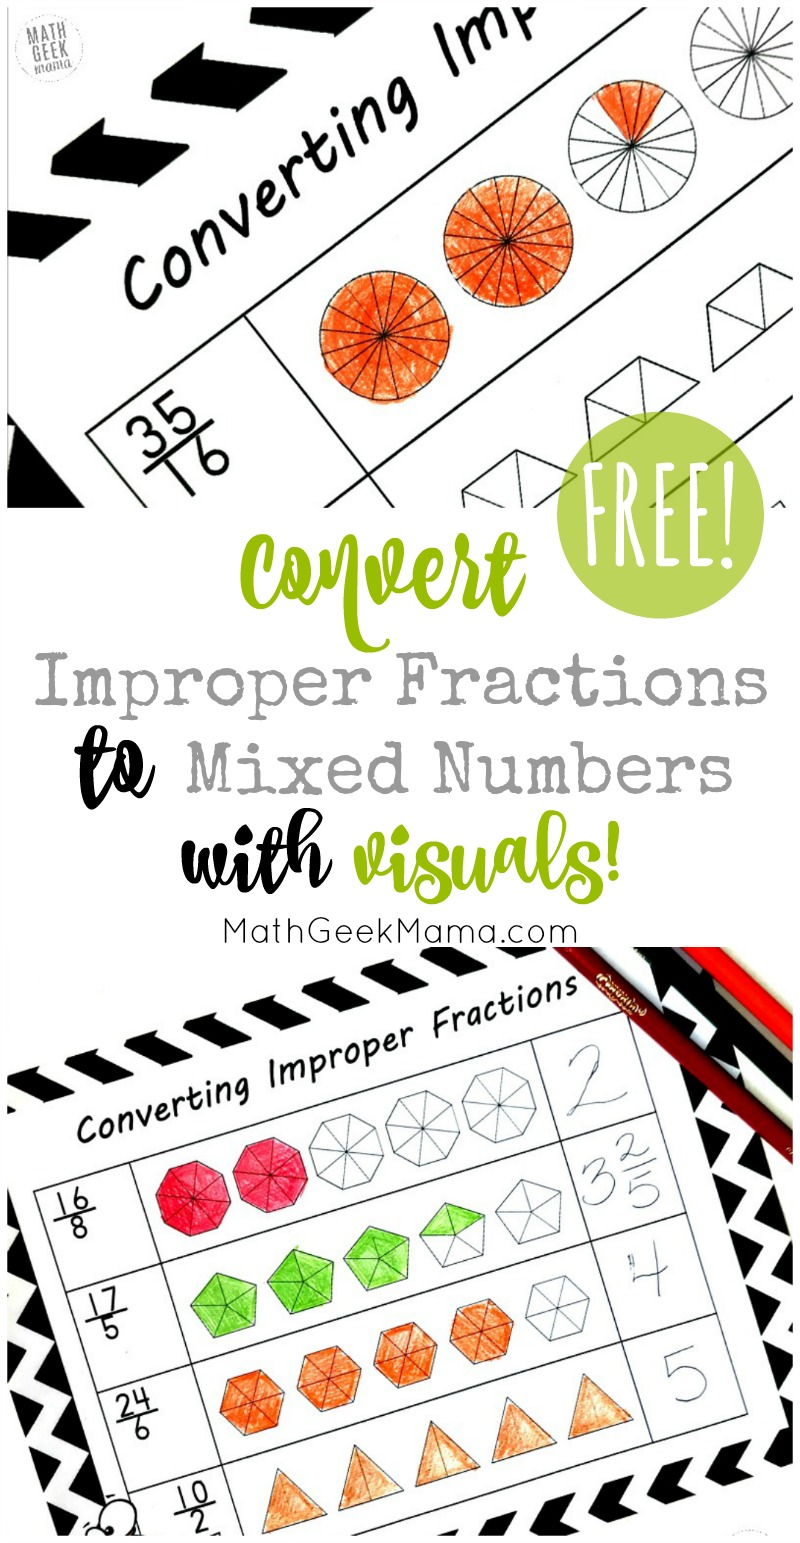 hight resolution of FREE} Convert Improper Fractions to Mixed Numbers Using Visuals